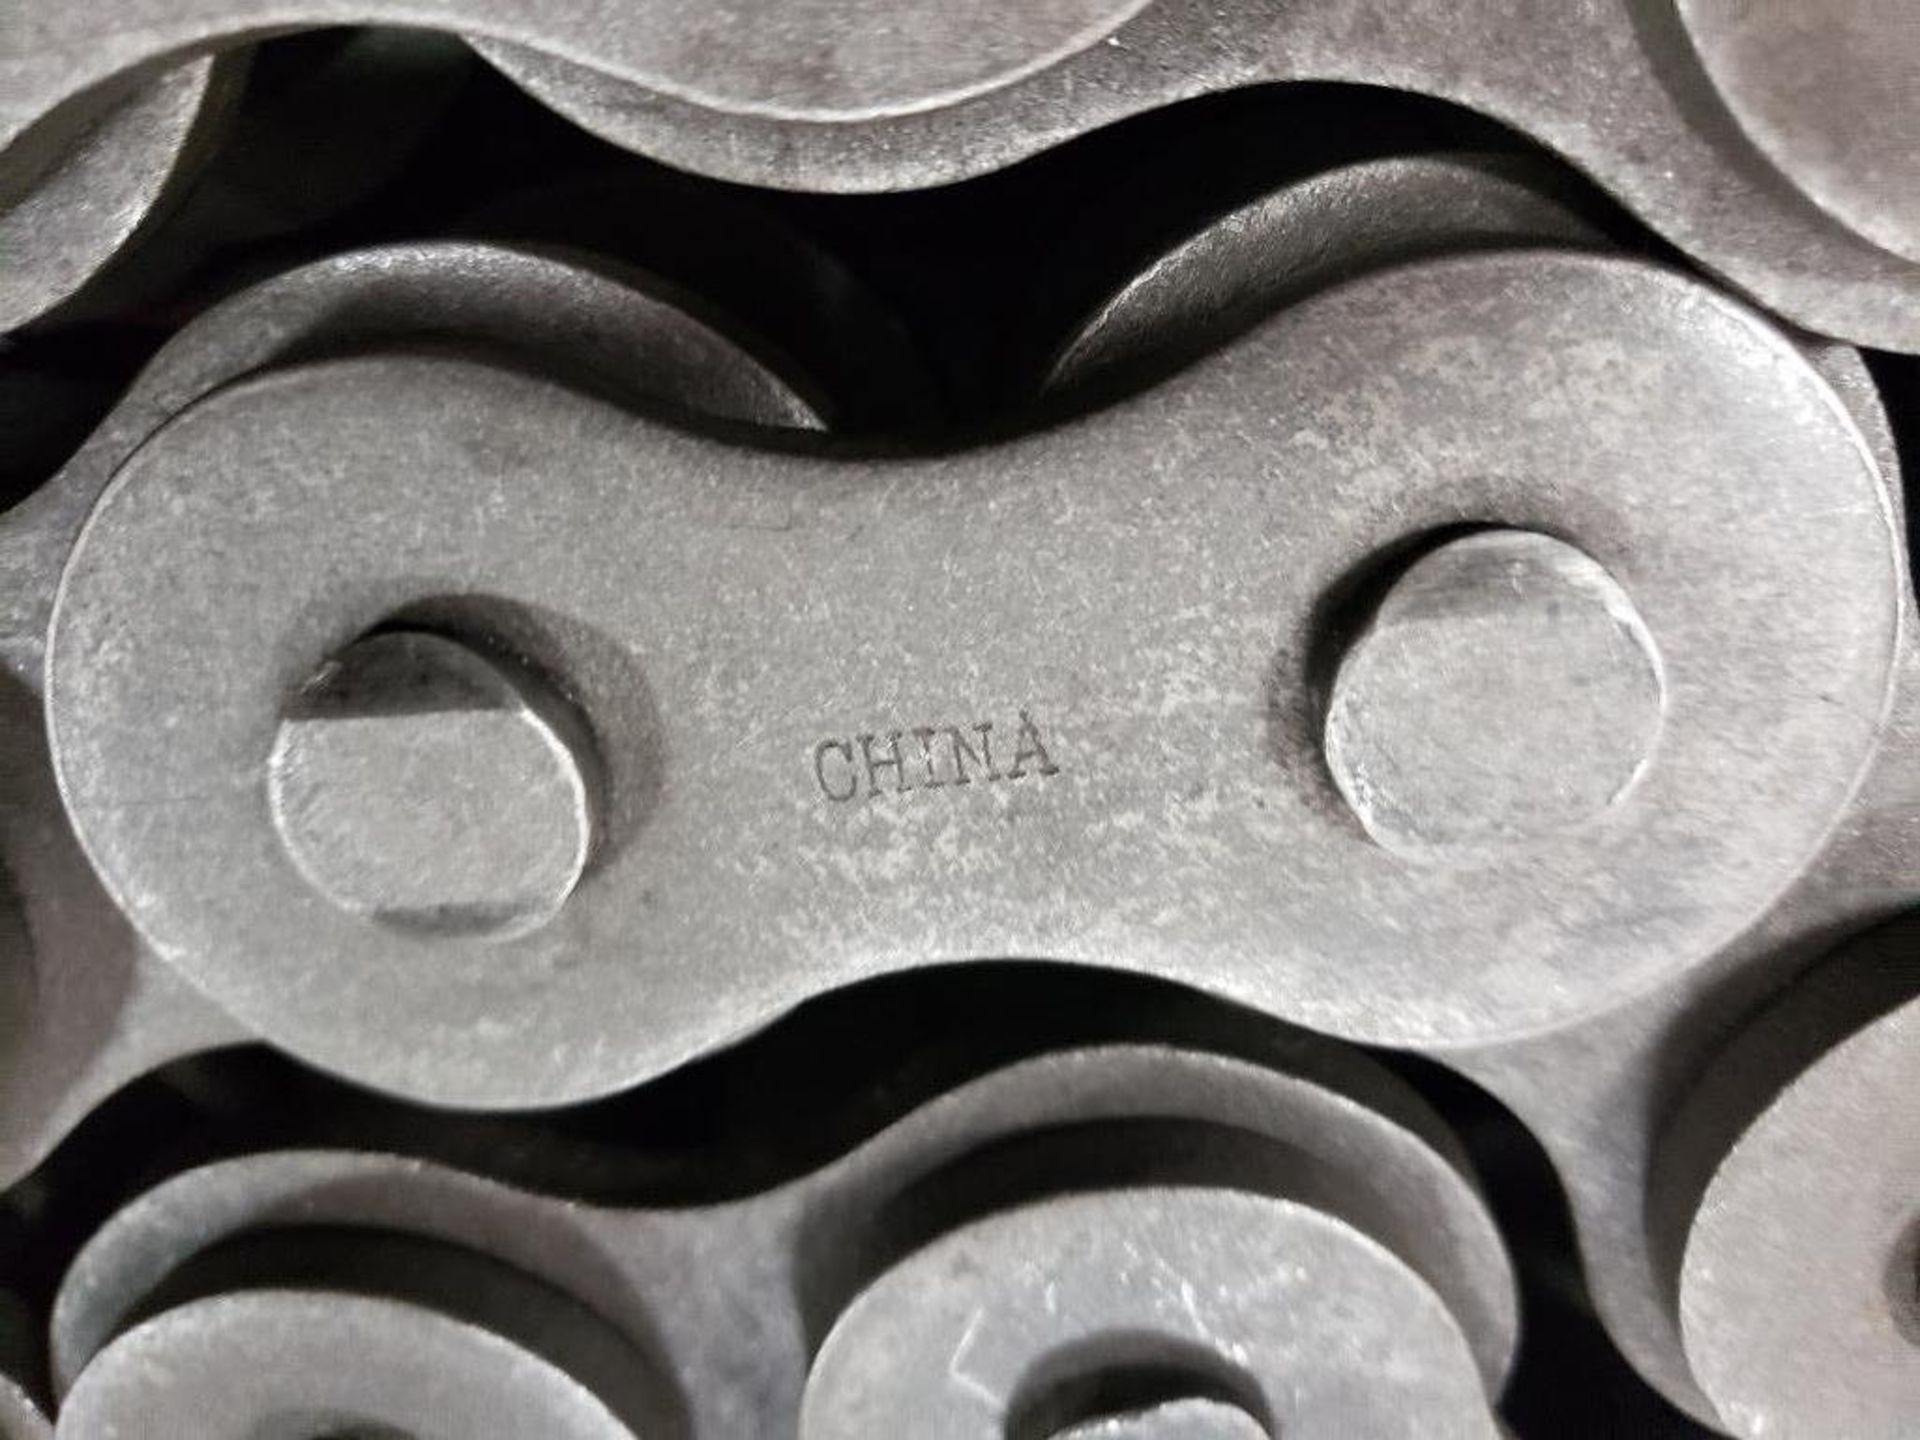 10FT #200 Roller chain. - Image 4 of 5